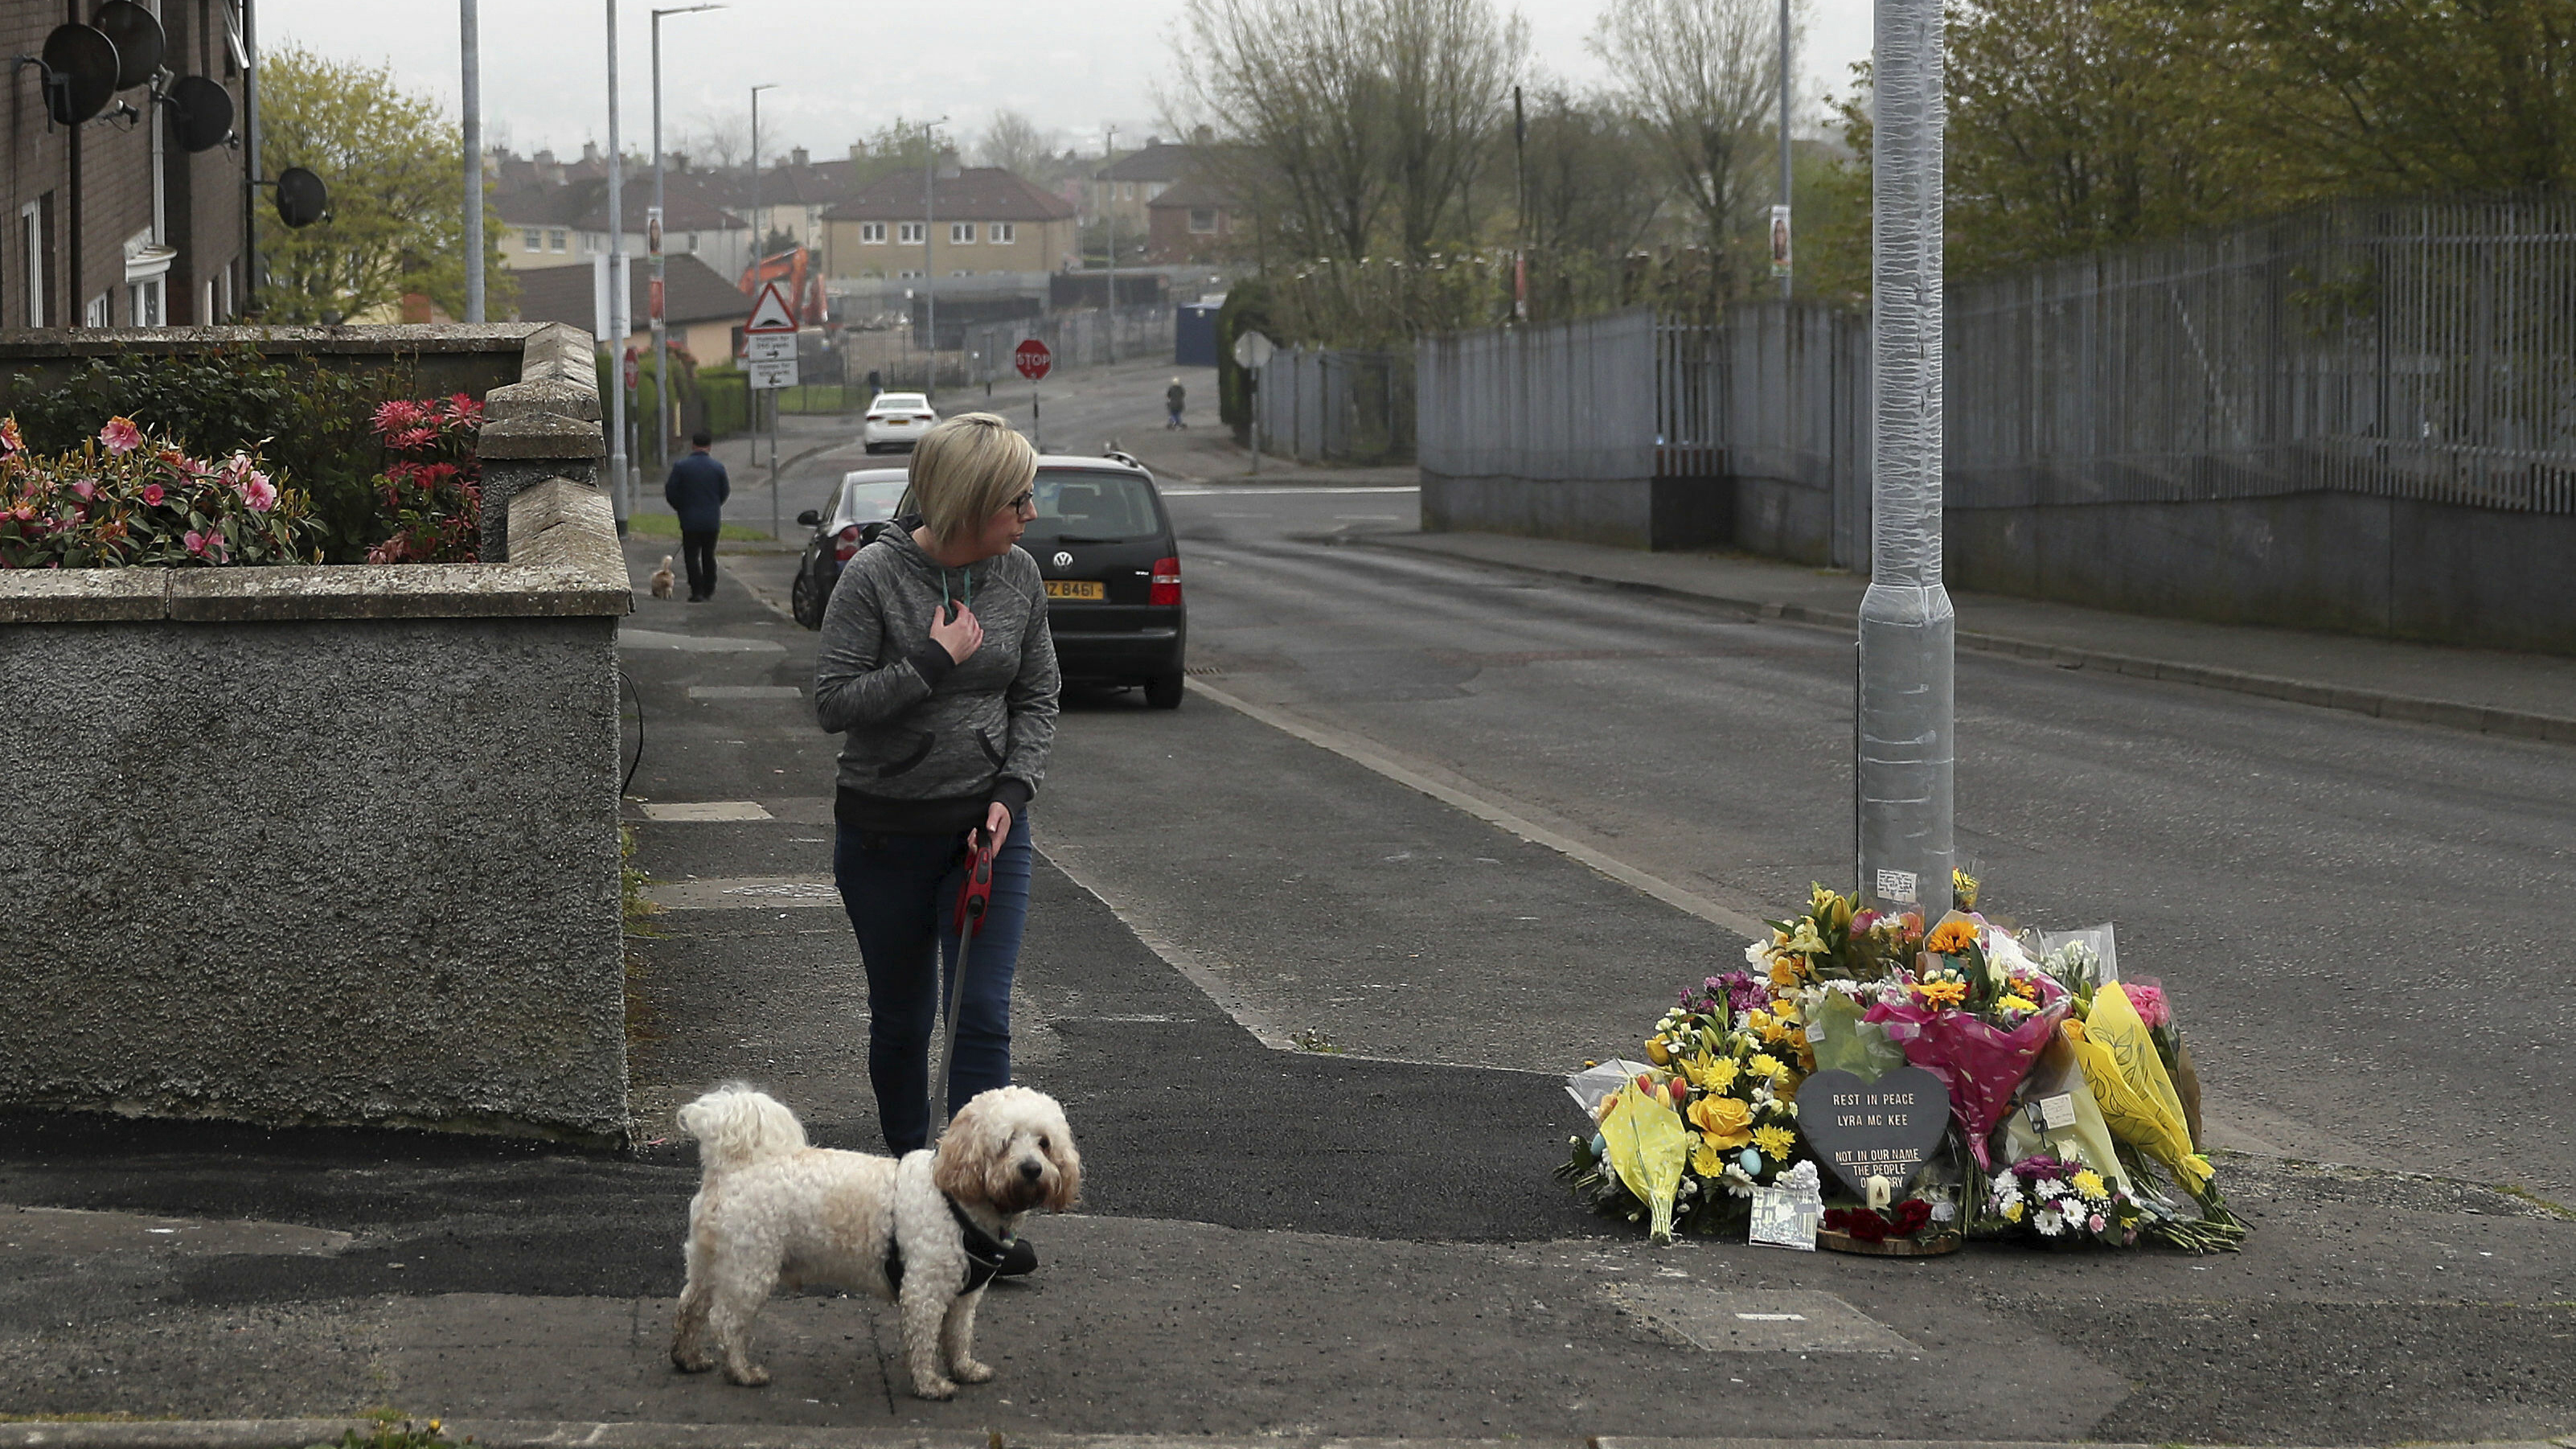 Northern Ireland Police Arrest 2 Men In Shooting Death Of Journalist